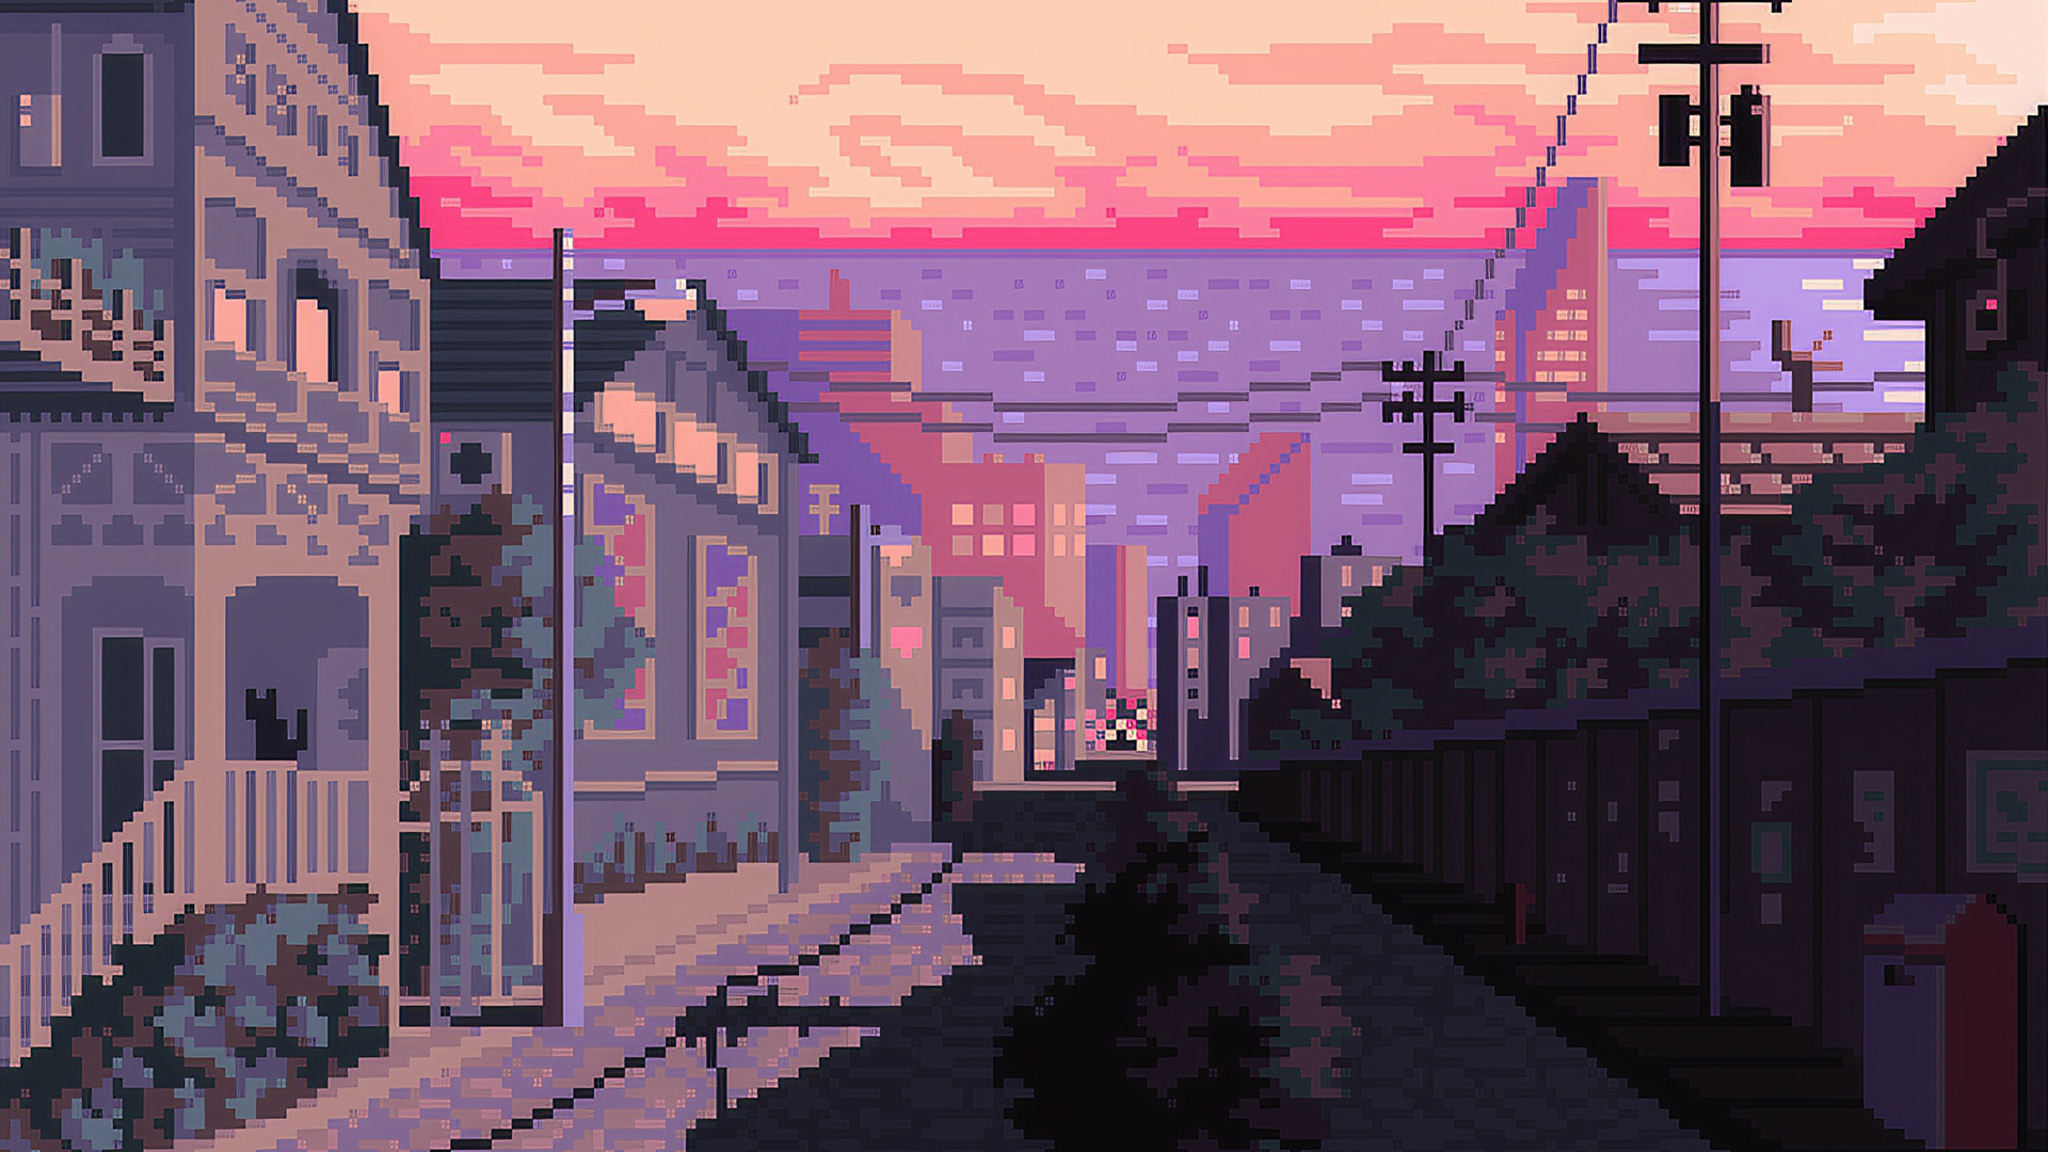 2048x1152 Late Afternoon Pixel Art 2048x1152 Resolution Hd